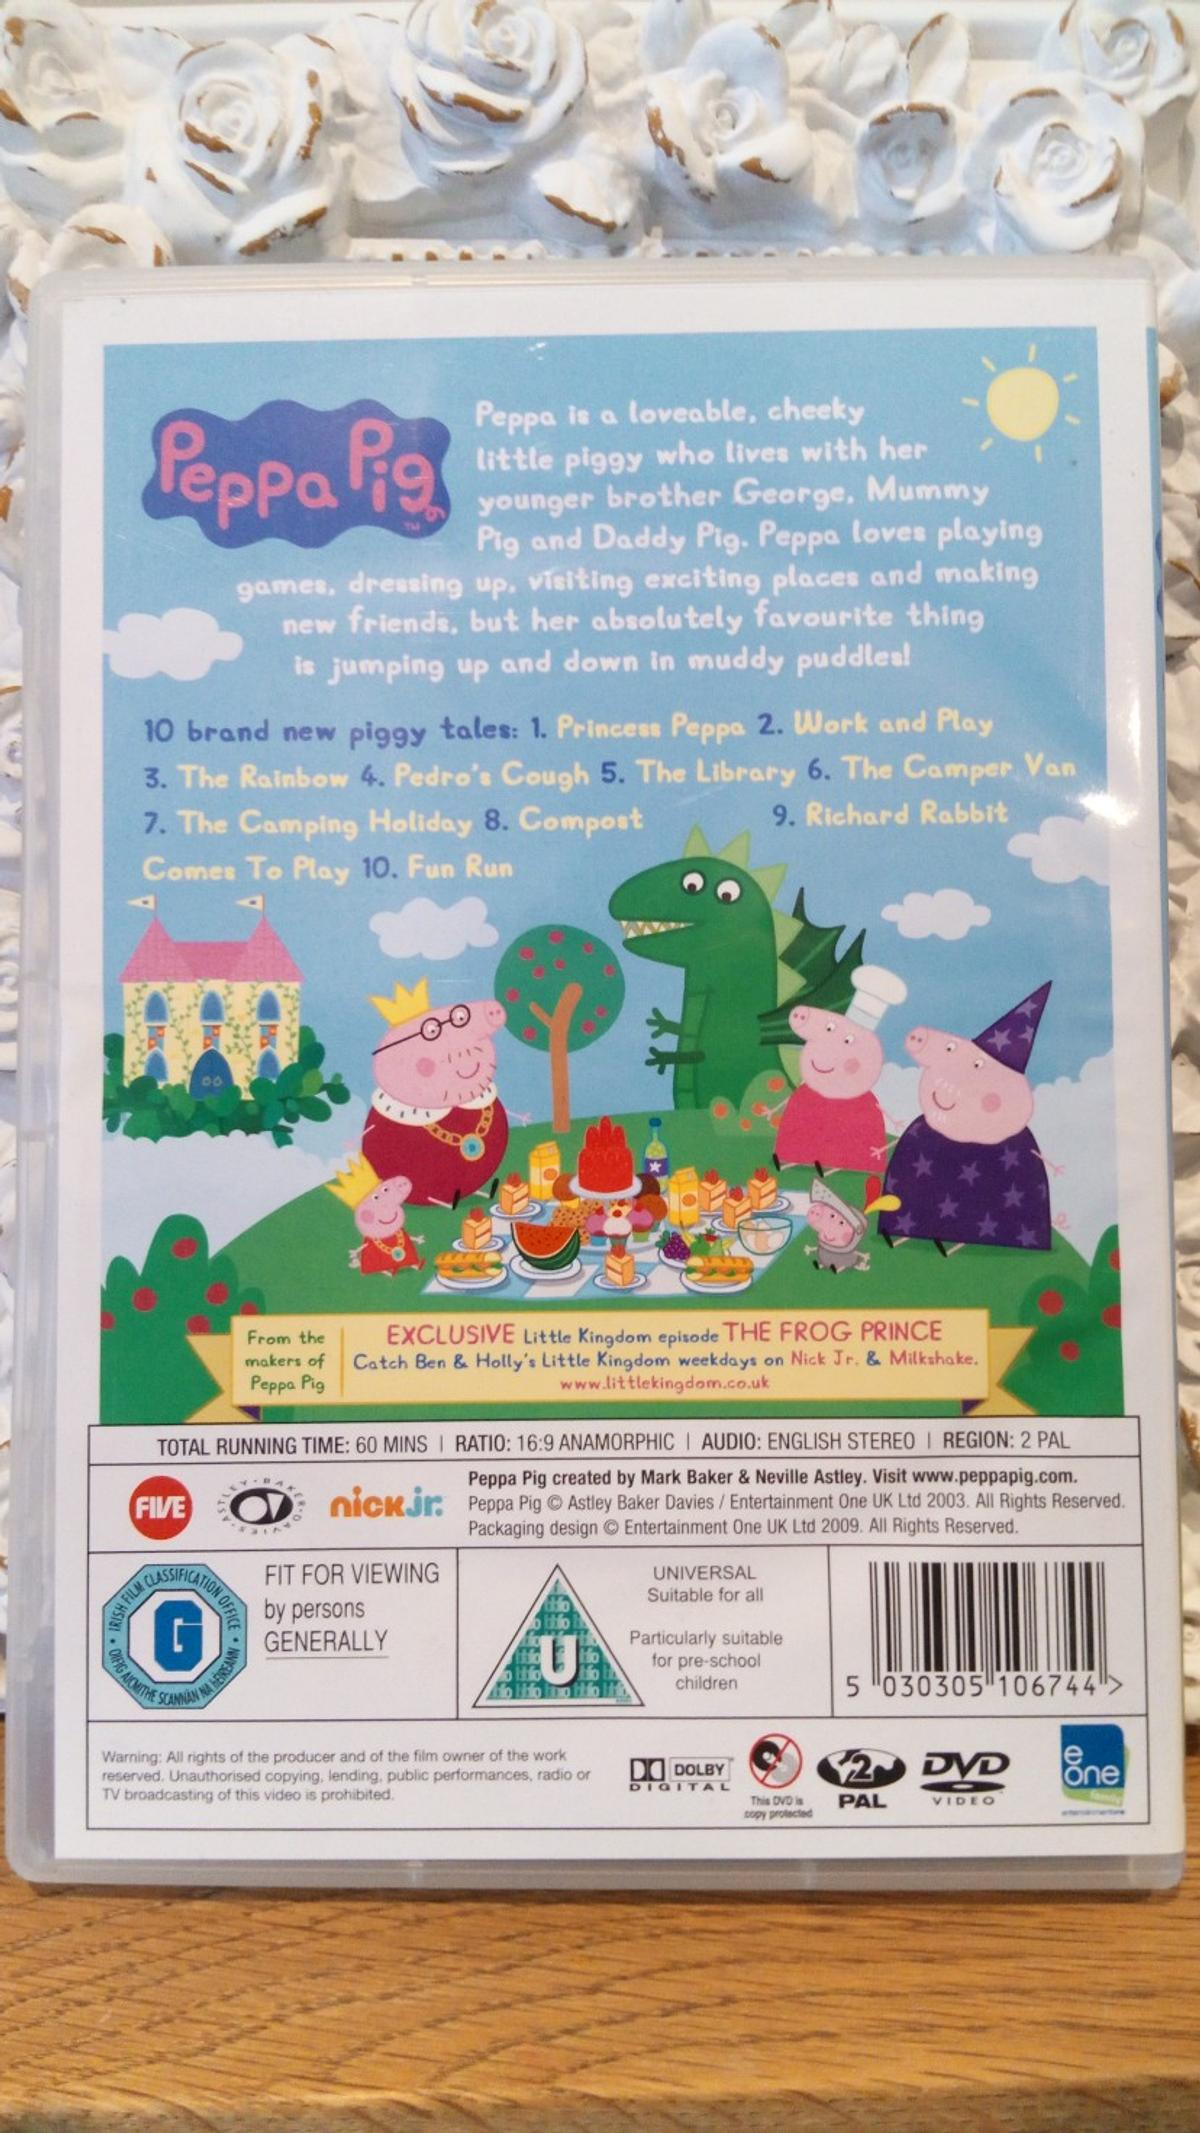 Peppa Pig Dvd In London Borough Of Bexley For 1 00 For Sale Shpock